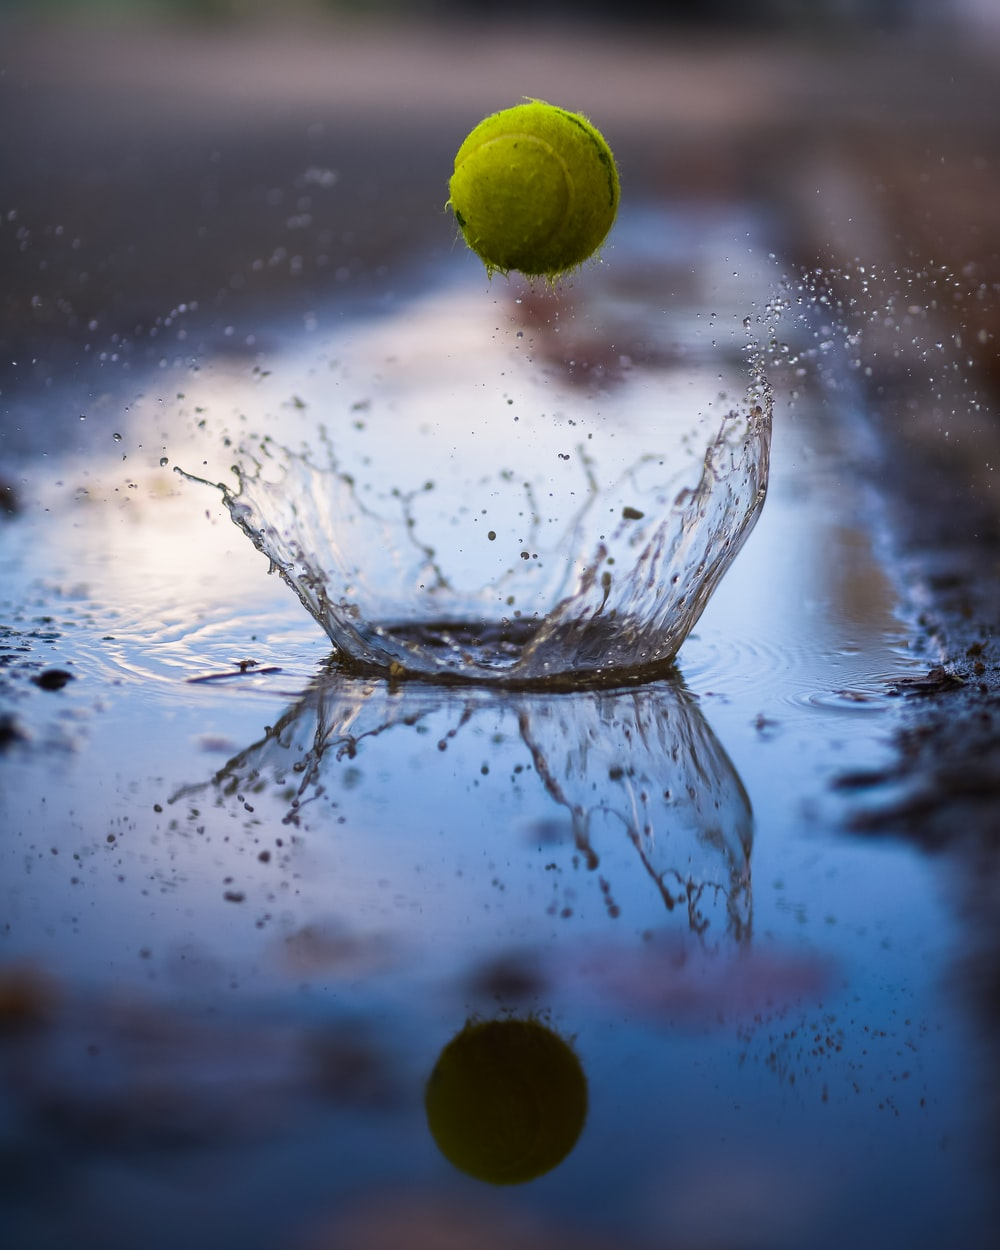 green tennis ball bouncing on water